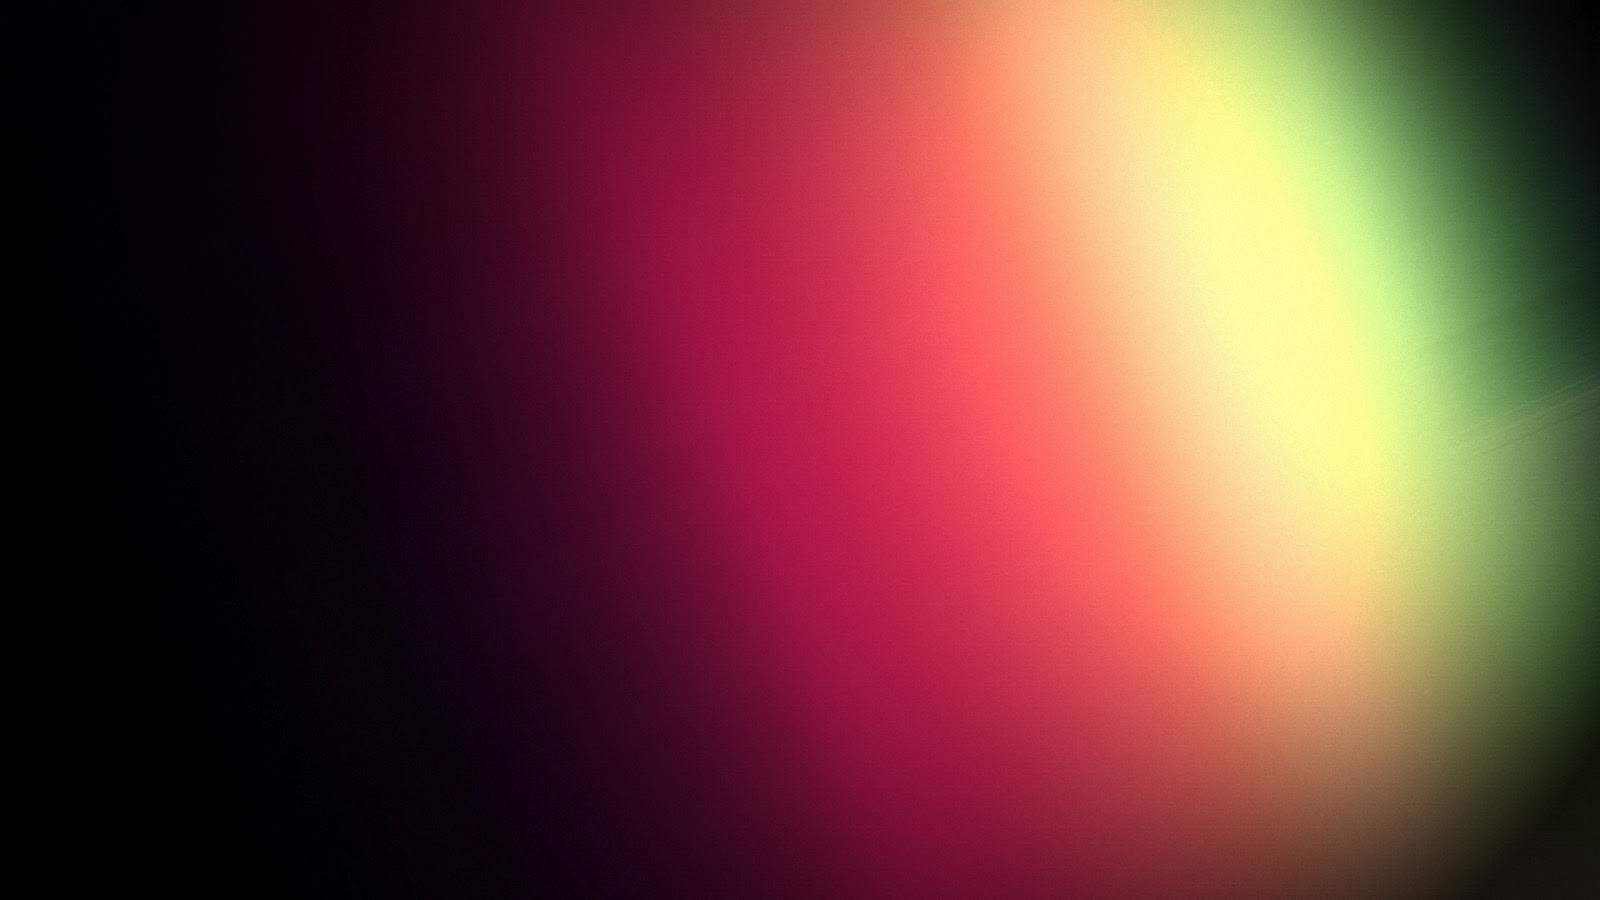 Spectrum Abstract HD Wallpaper 1080p   HD Dock 1600x900